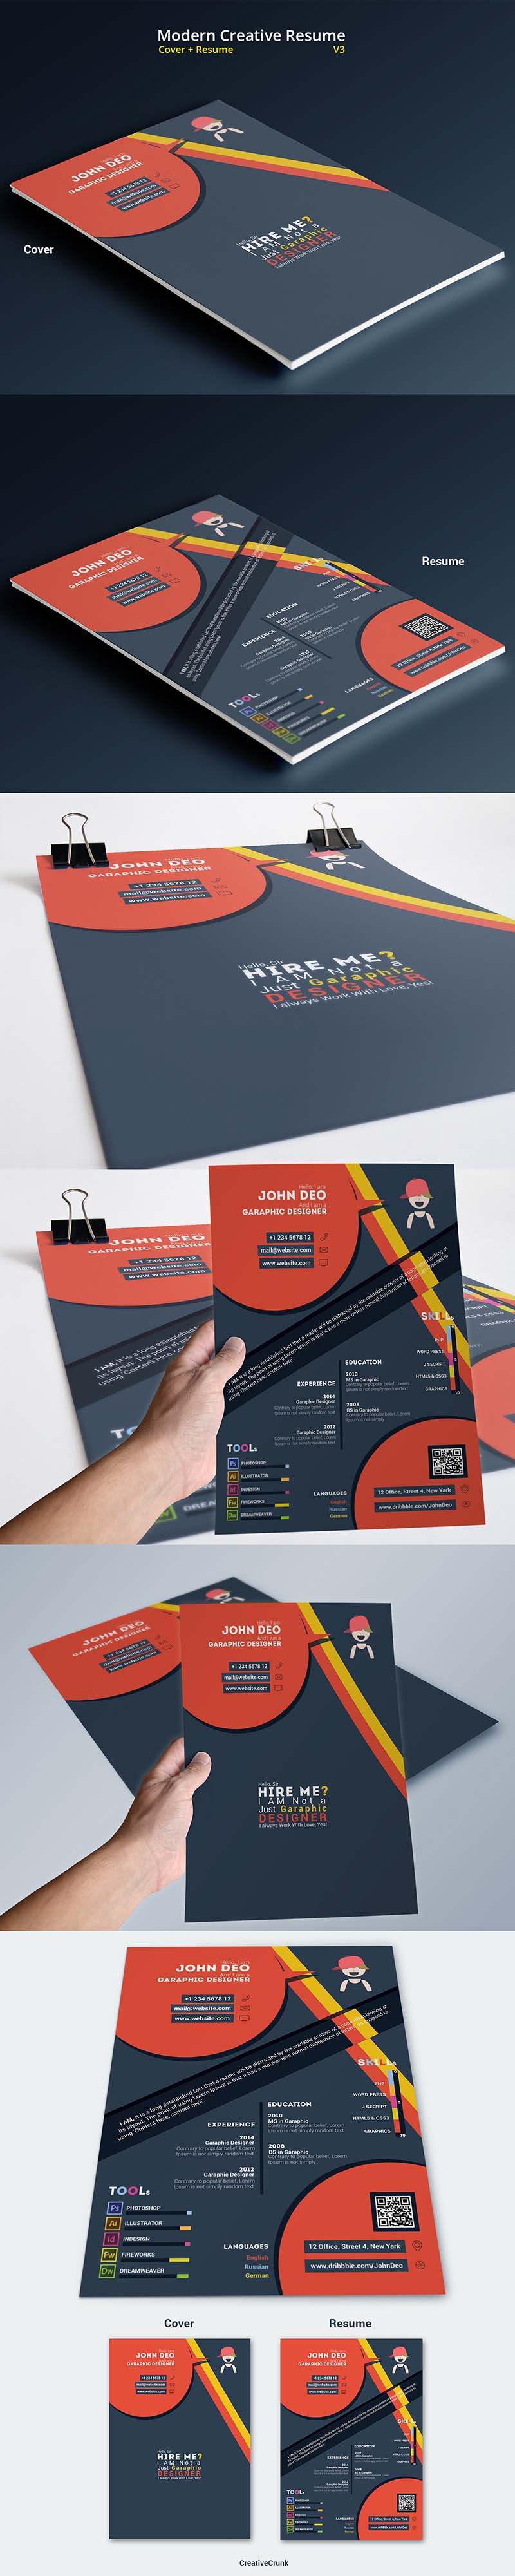 10 Free Resume-CV Templates Designs For Creative, Media, IT, Web and ...